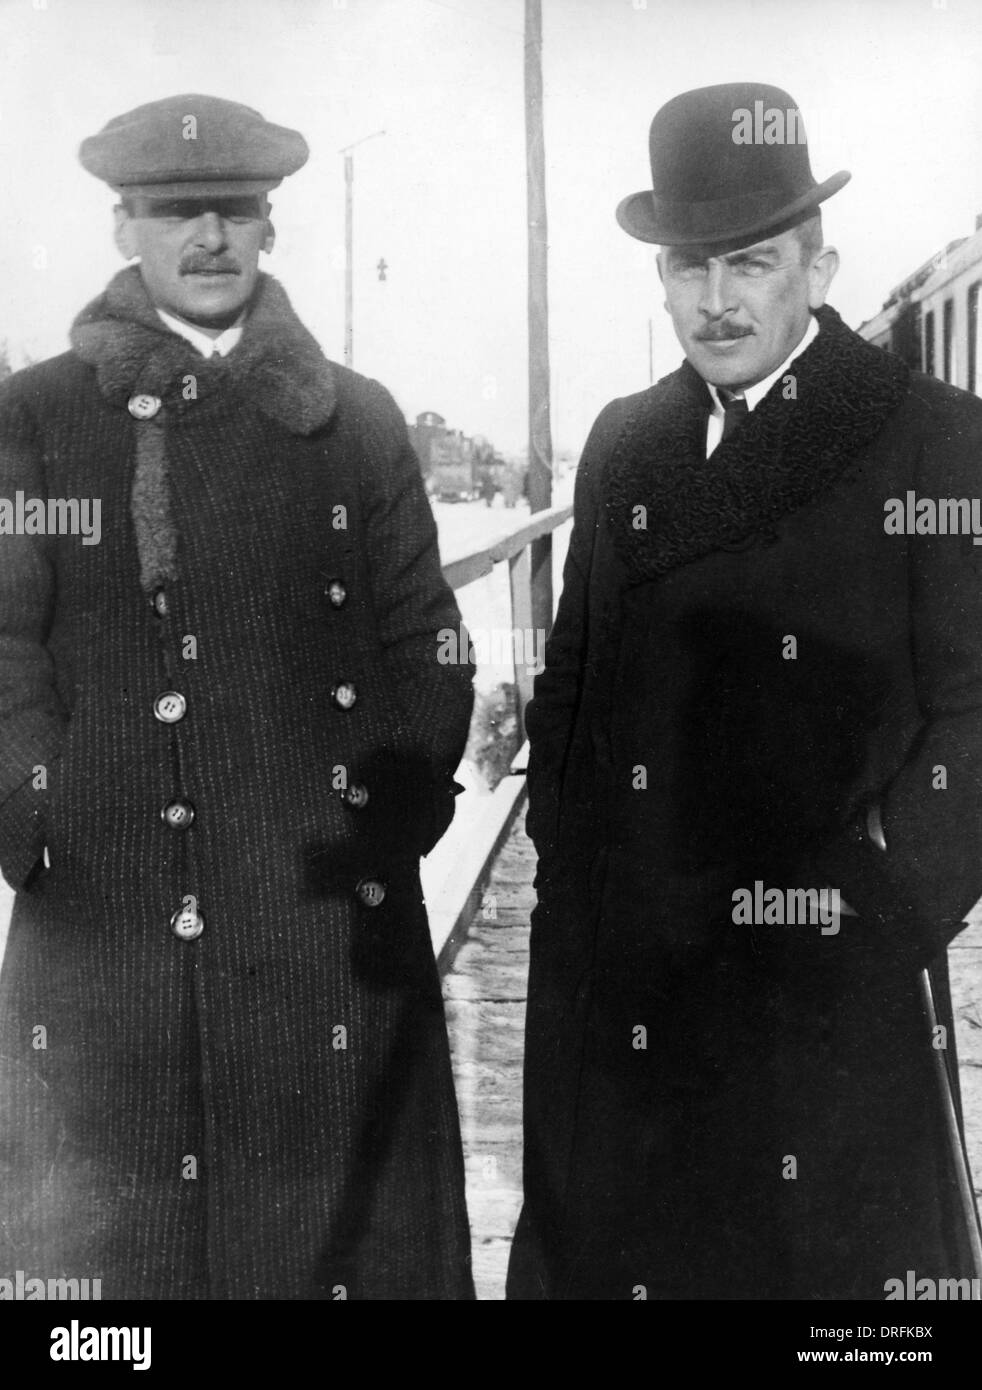 Count von Czernin and Richard von Kuhlmann, Brest Litovsk - Stock Image